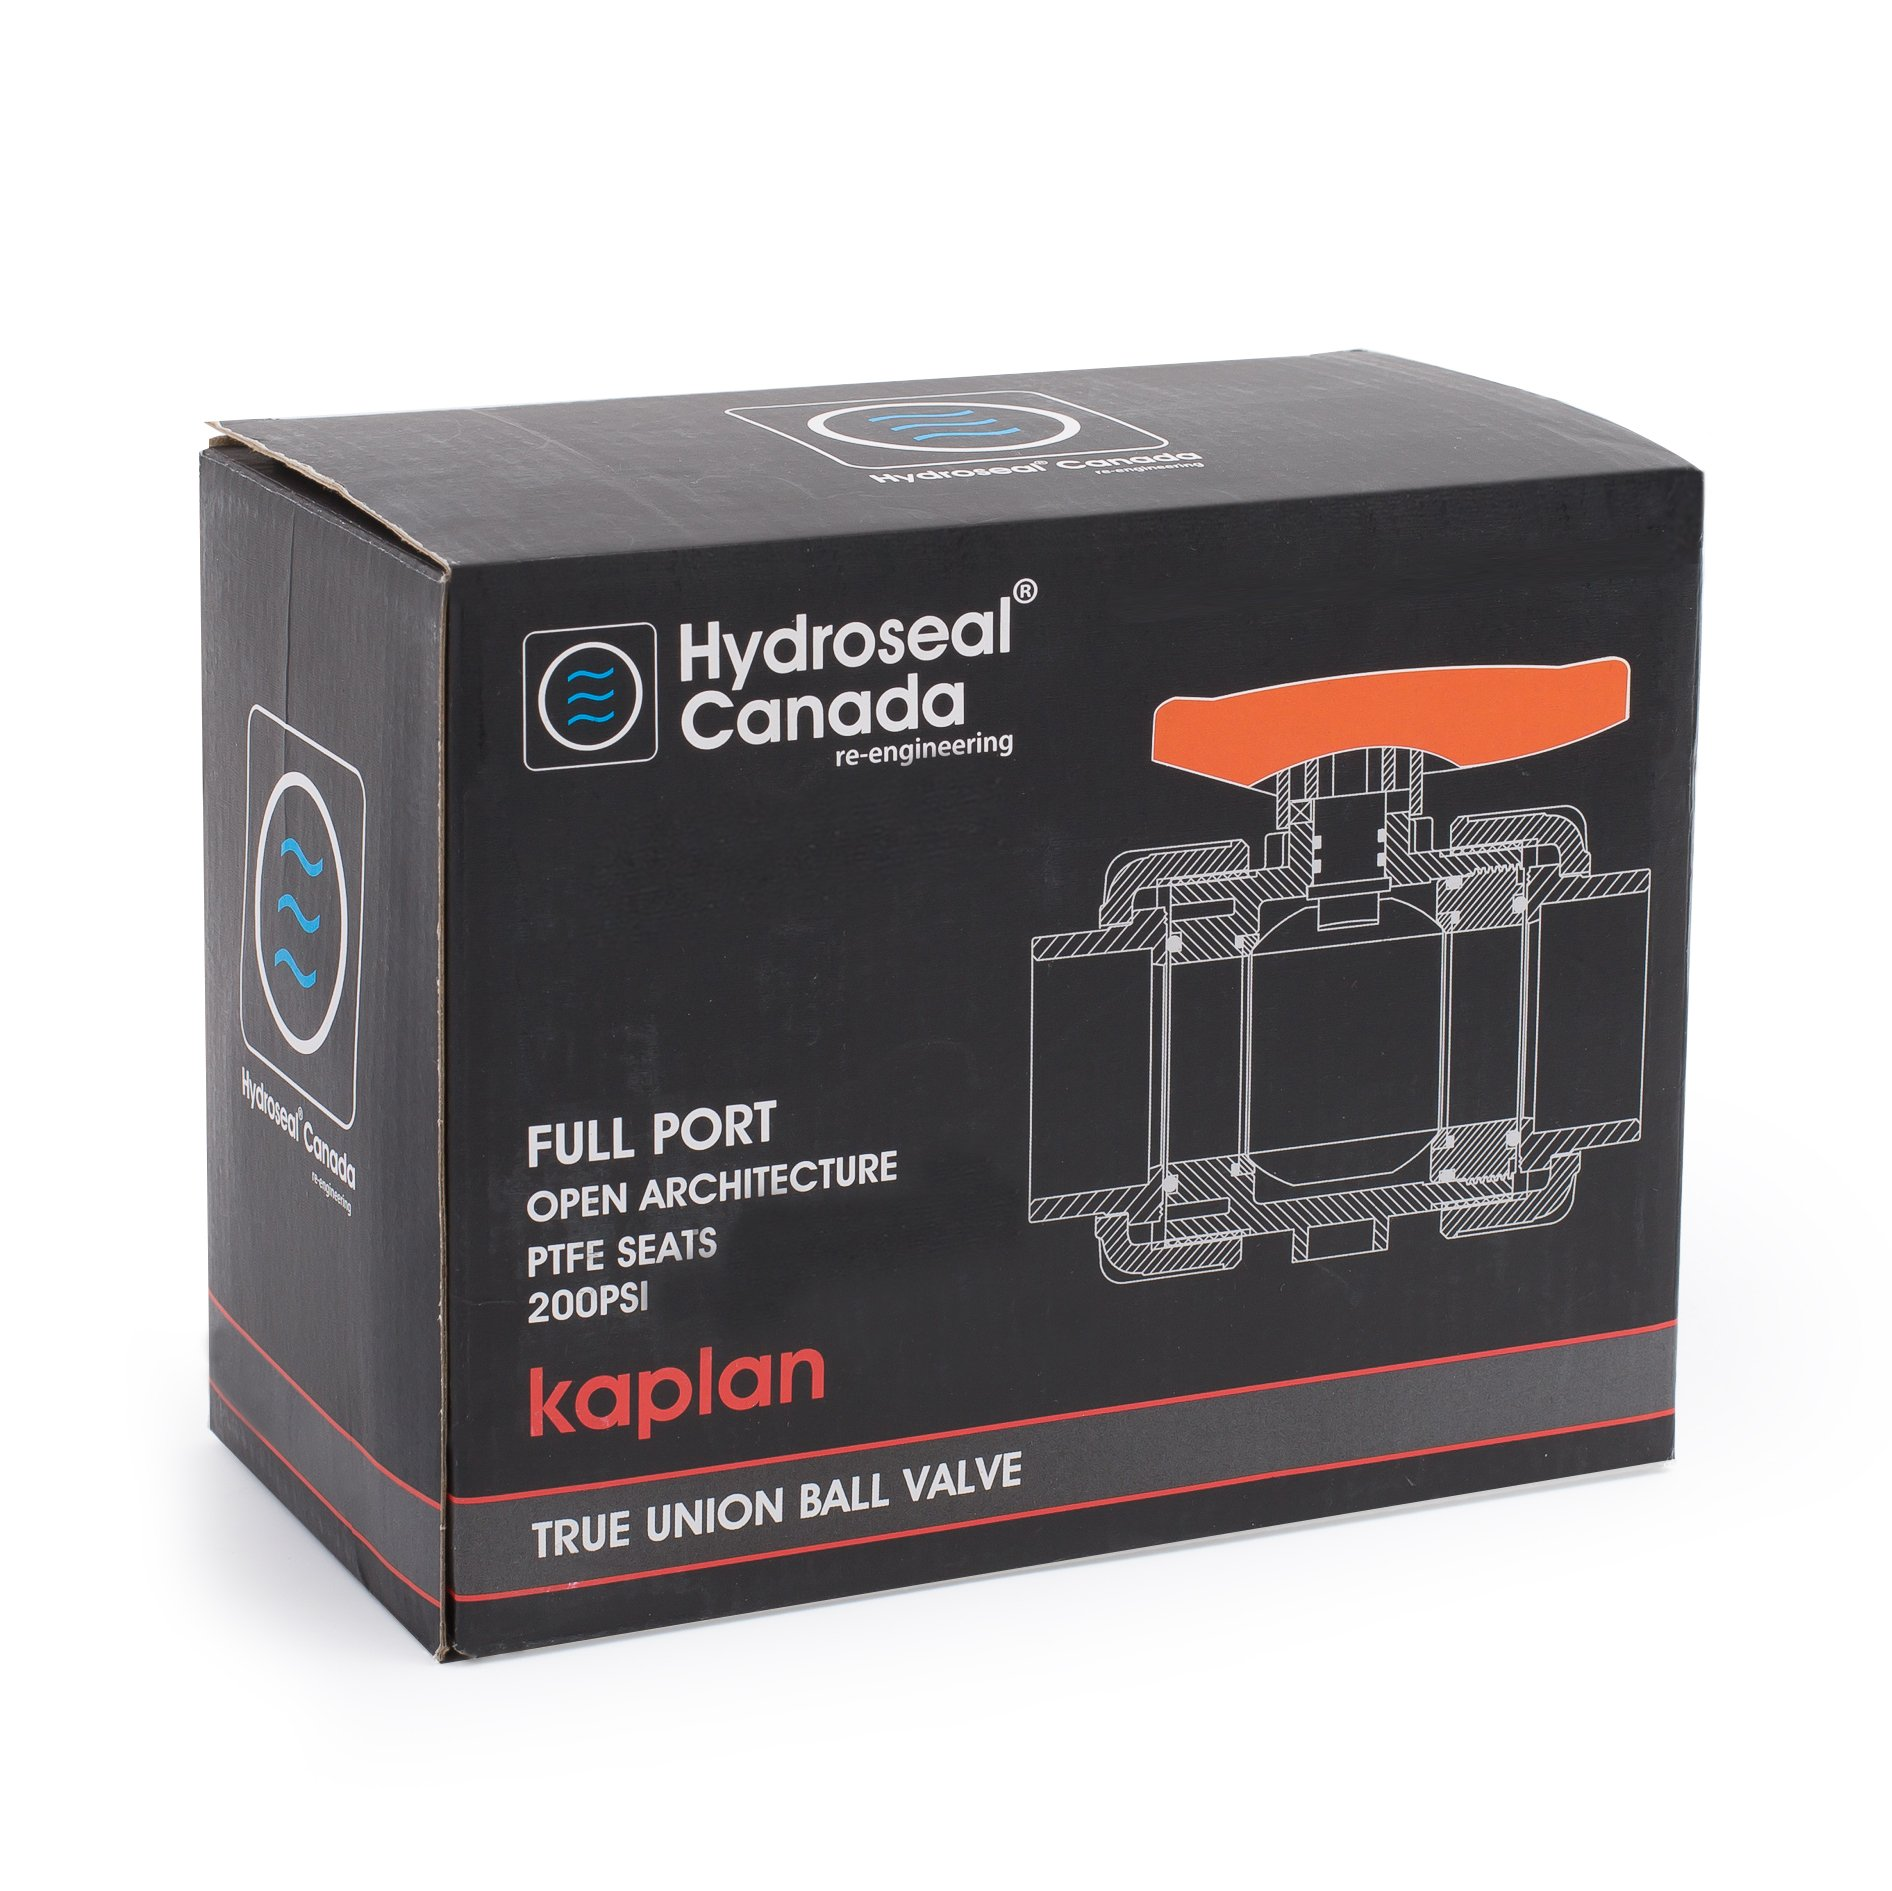 HYDROSEAL Kaplan 3/4'' PVC True Union Ball Valve with Full Port, ASTM F1970, EPDM O-Rings and Reversible PTFE Seats, Rated at 200 PSI @73F, Gray, 3/4 inch Socket (3/4'') by Hydroseal (Image #7)